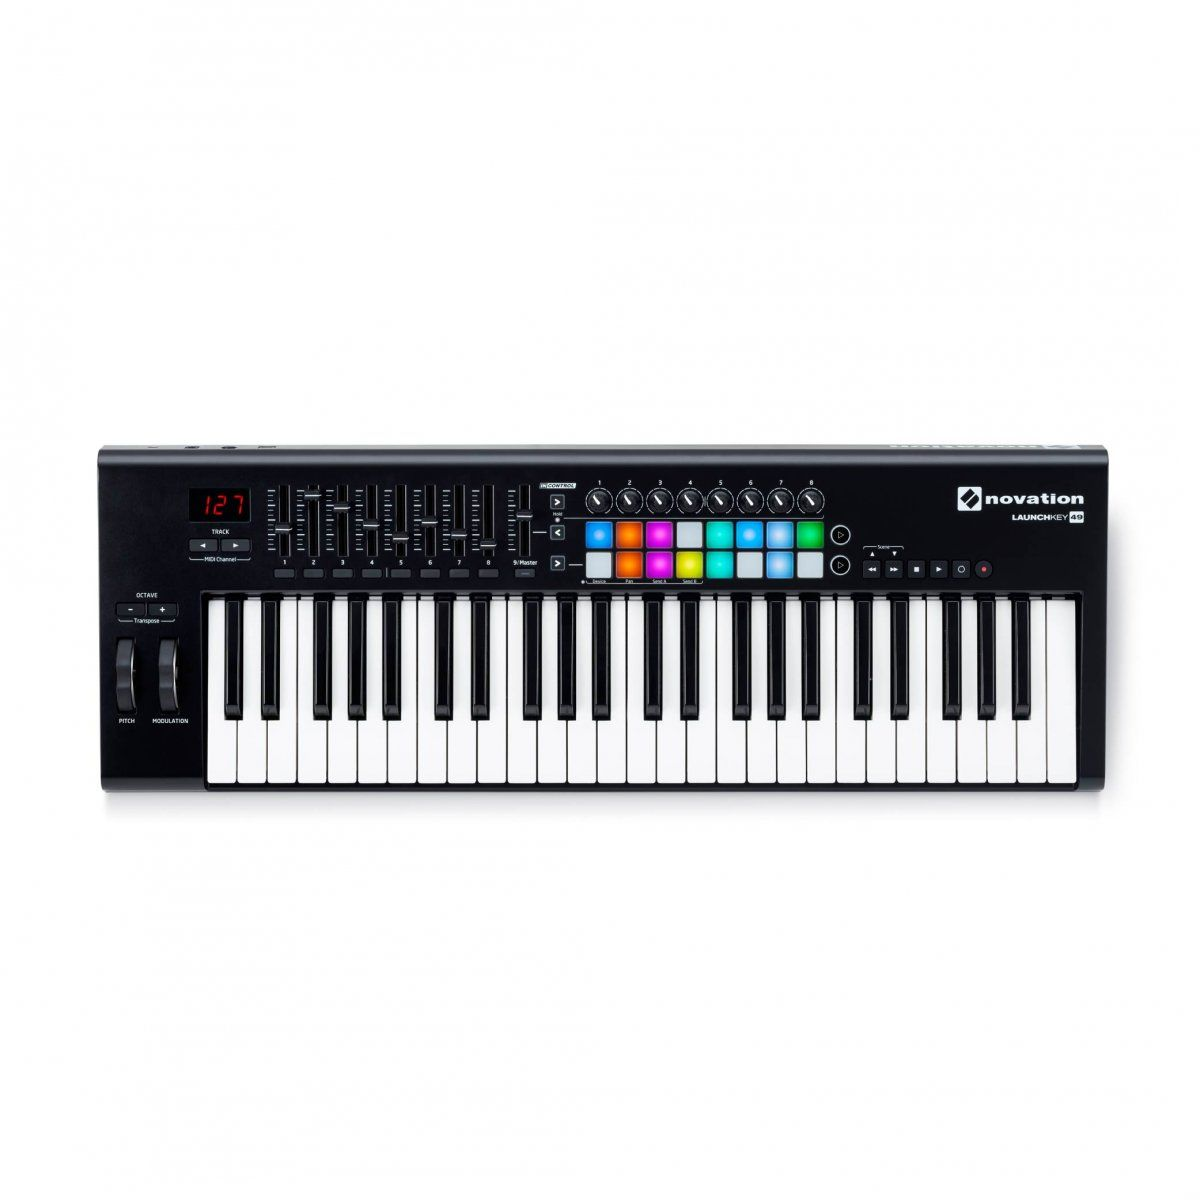 Teclado Controlador Midi Novation Launchkey 49 Mk2